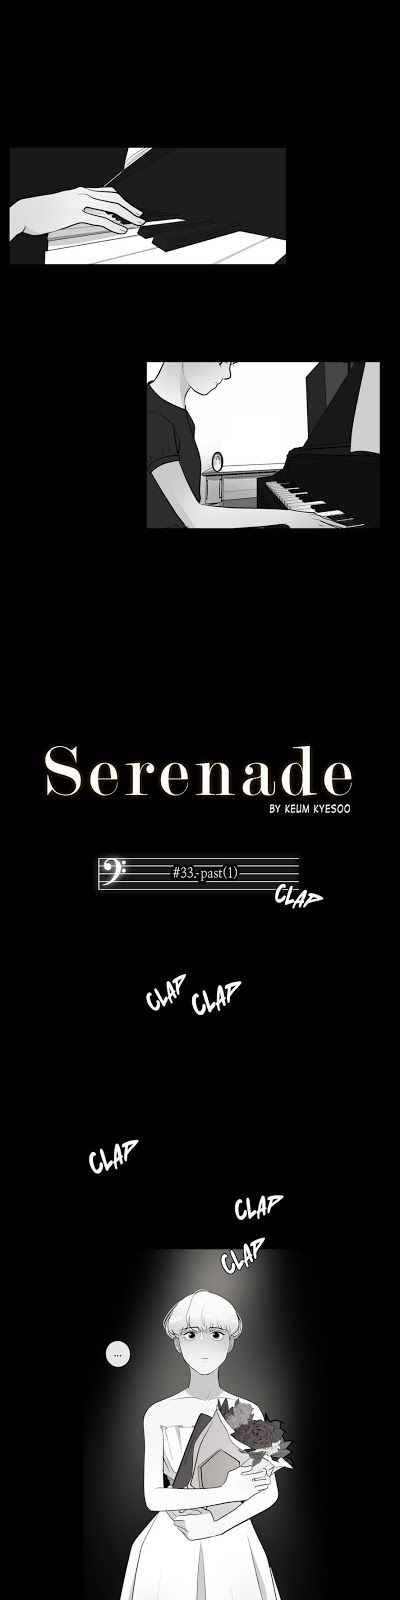 Serenade (keum Kyesoo) - Chapter 34